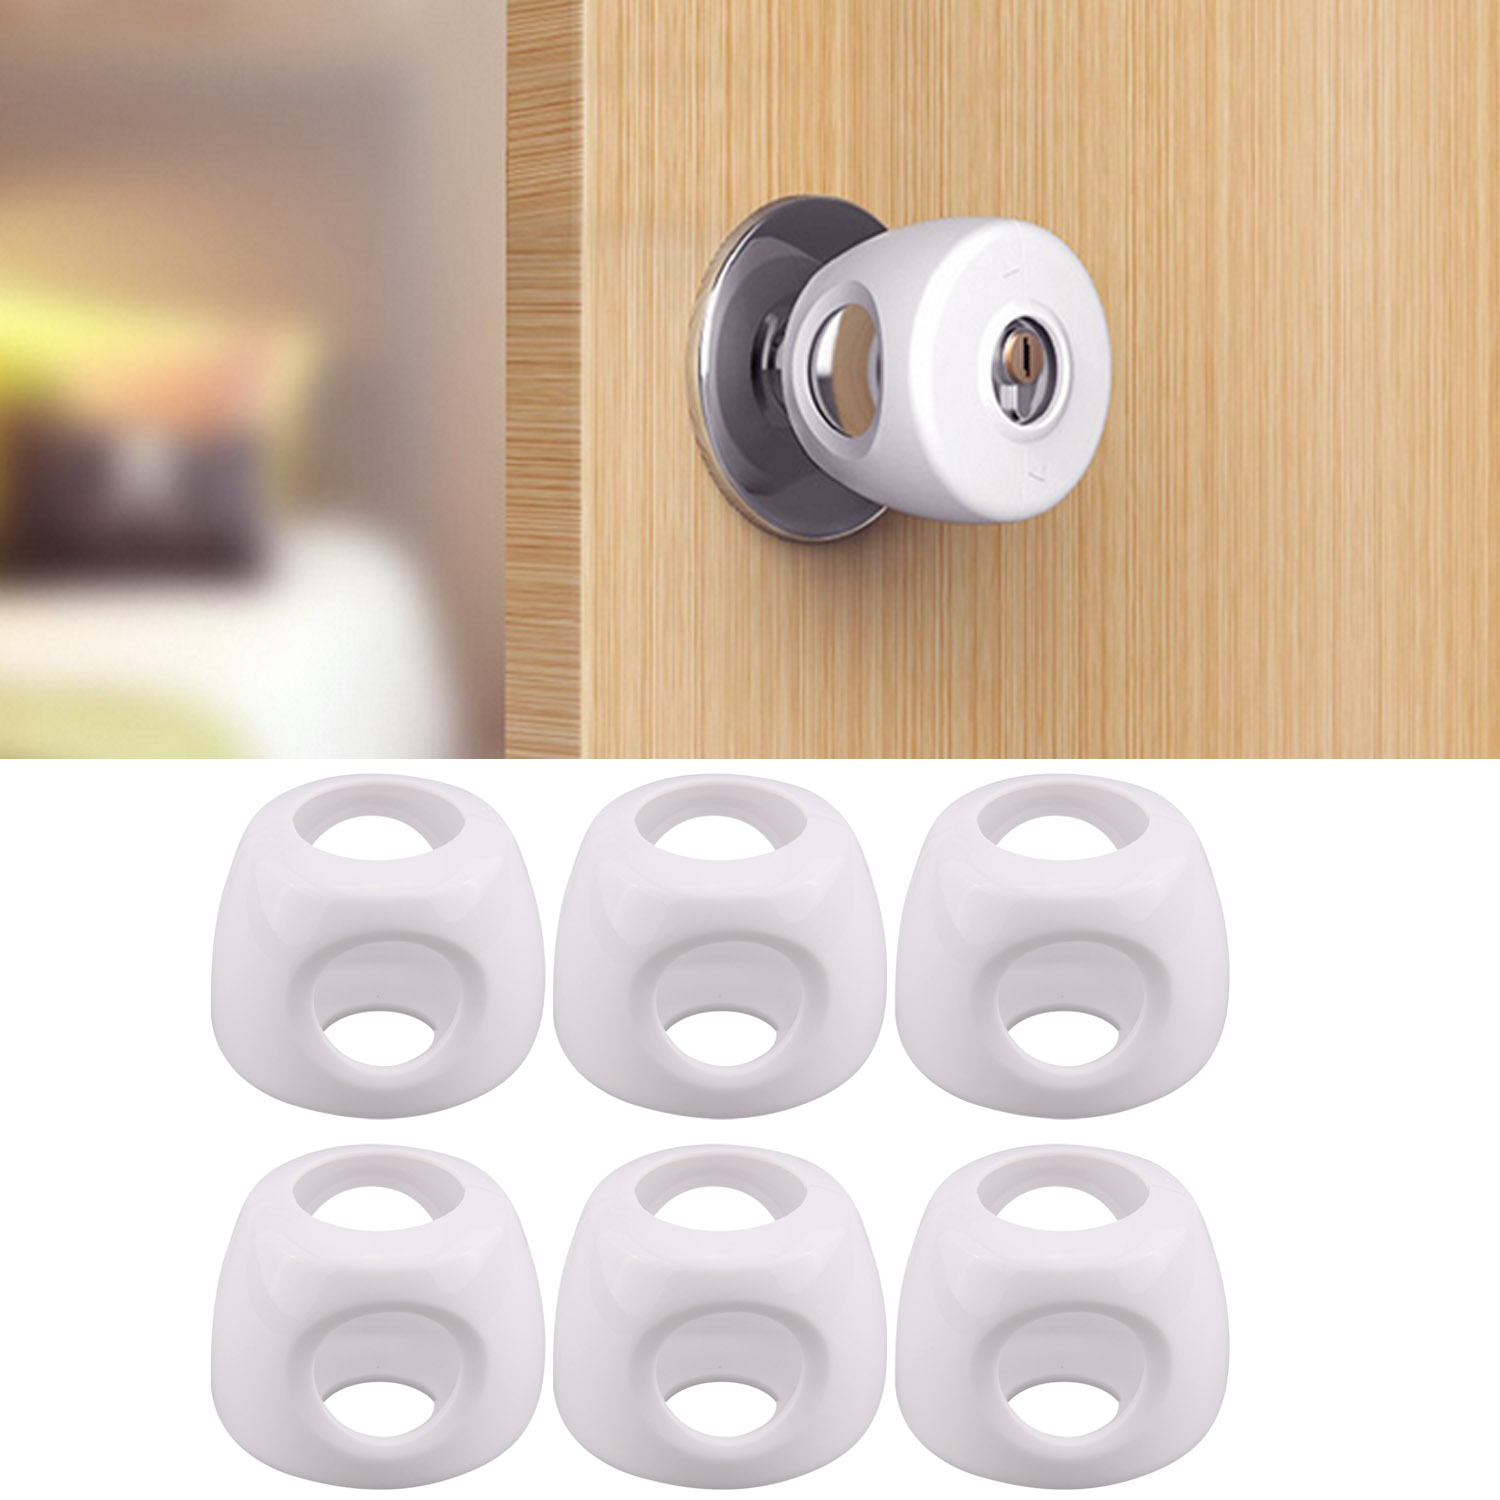 6PCS Universal Baby Safety Locks Round Door Knob Safety Lock Round Handle Doorknob Protective Cover Baby Security Protection